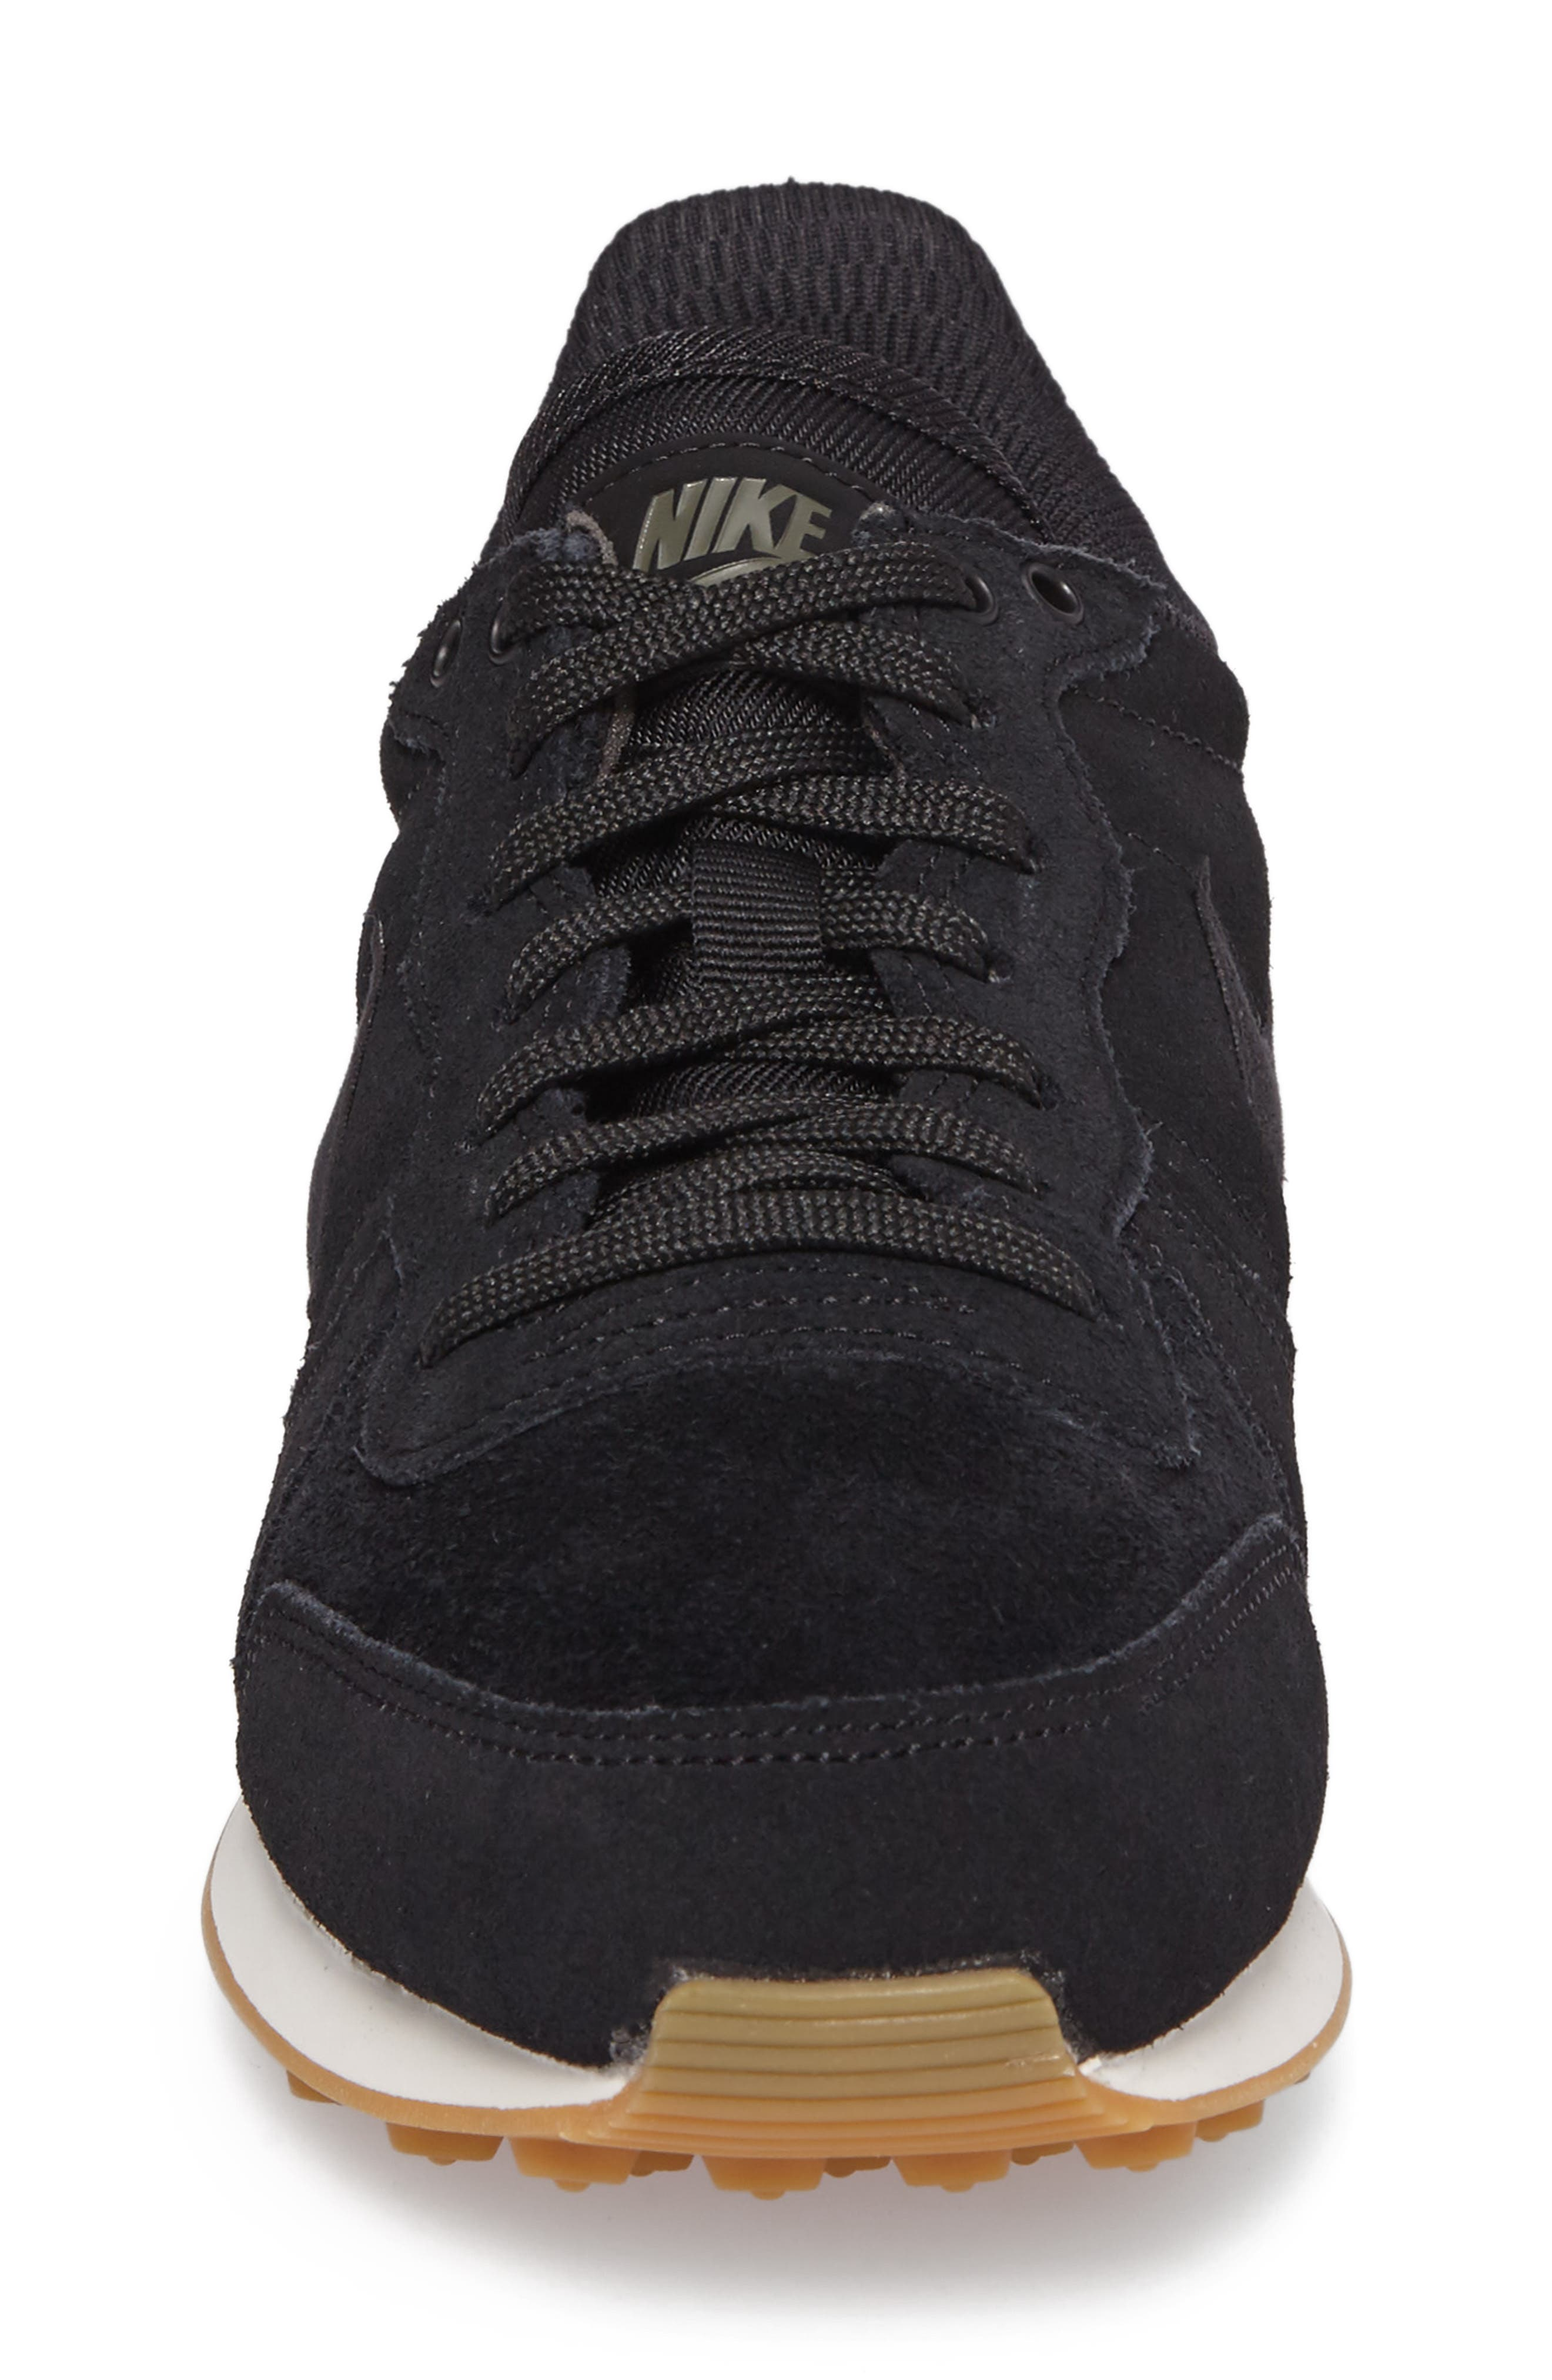 Internationalist SE Sneaker,                             Alternate thumbnail 4, color,                             Black/ Black/ Green/ Brown